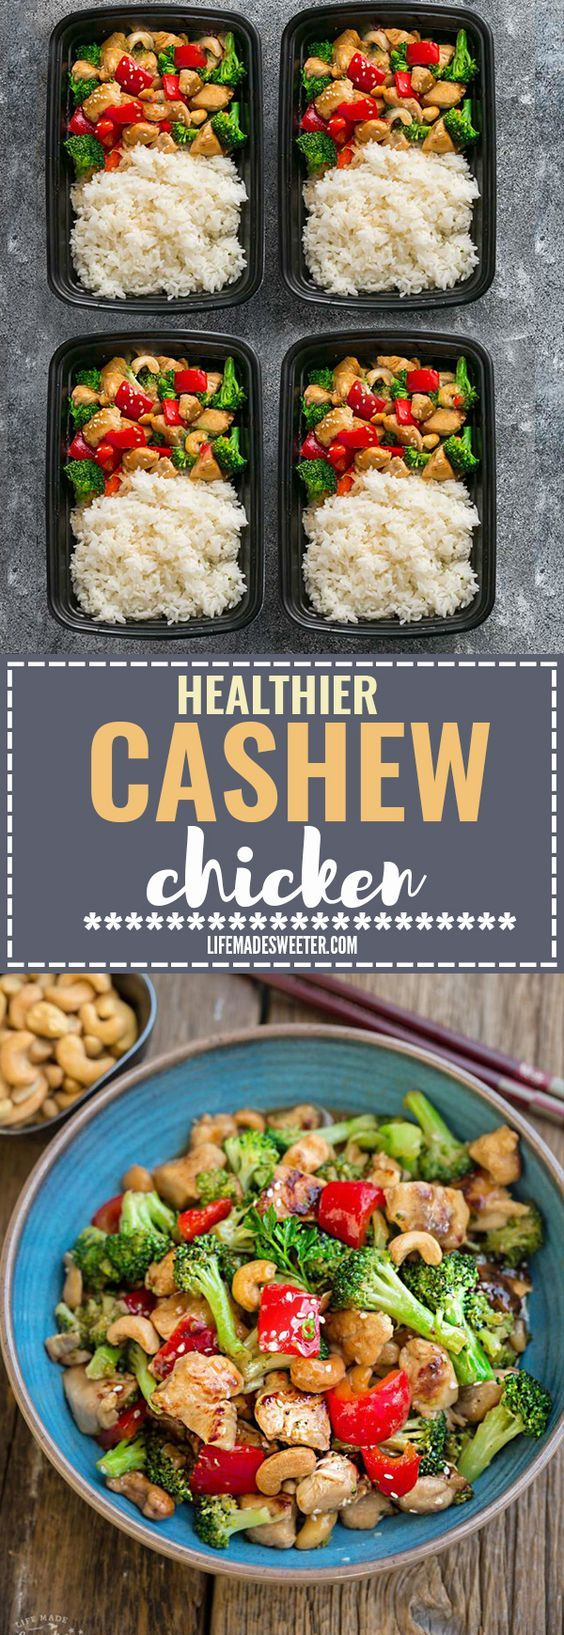 Healthy Cashew Chicken – an easy 20 minute guilt-free gluten free skinny version (plus paleo friendly options) of the popular classic Chinese takeout dish. Plus a serving of tender crisp broccoli and red bell peppers for a healthier meal. Best of all, this recipe comes together in less than 25 minutes in just one pan! Perfect for busy weeknights! Plus a step-by-step how to video! Weekly meal prep for the week and leftovers are great for lunch bowls for work or school.